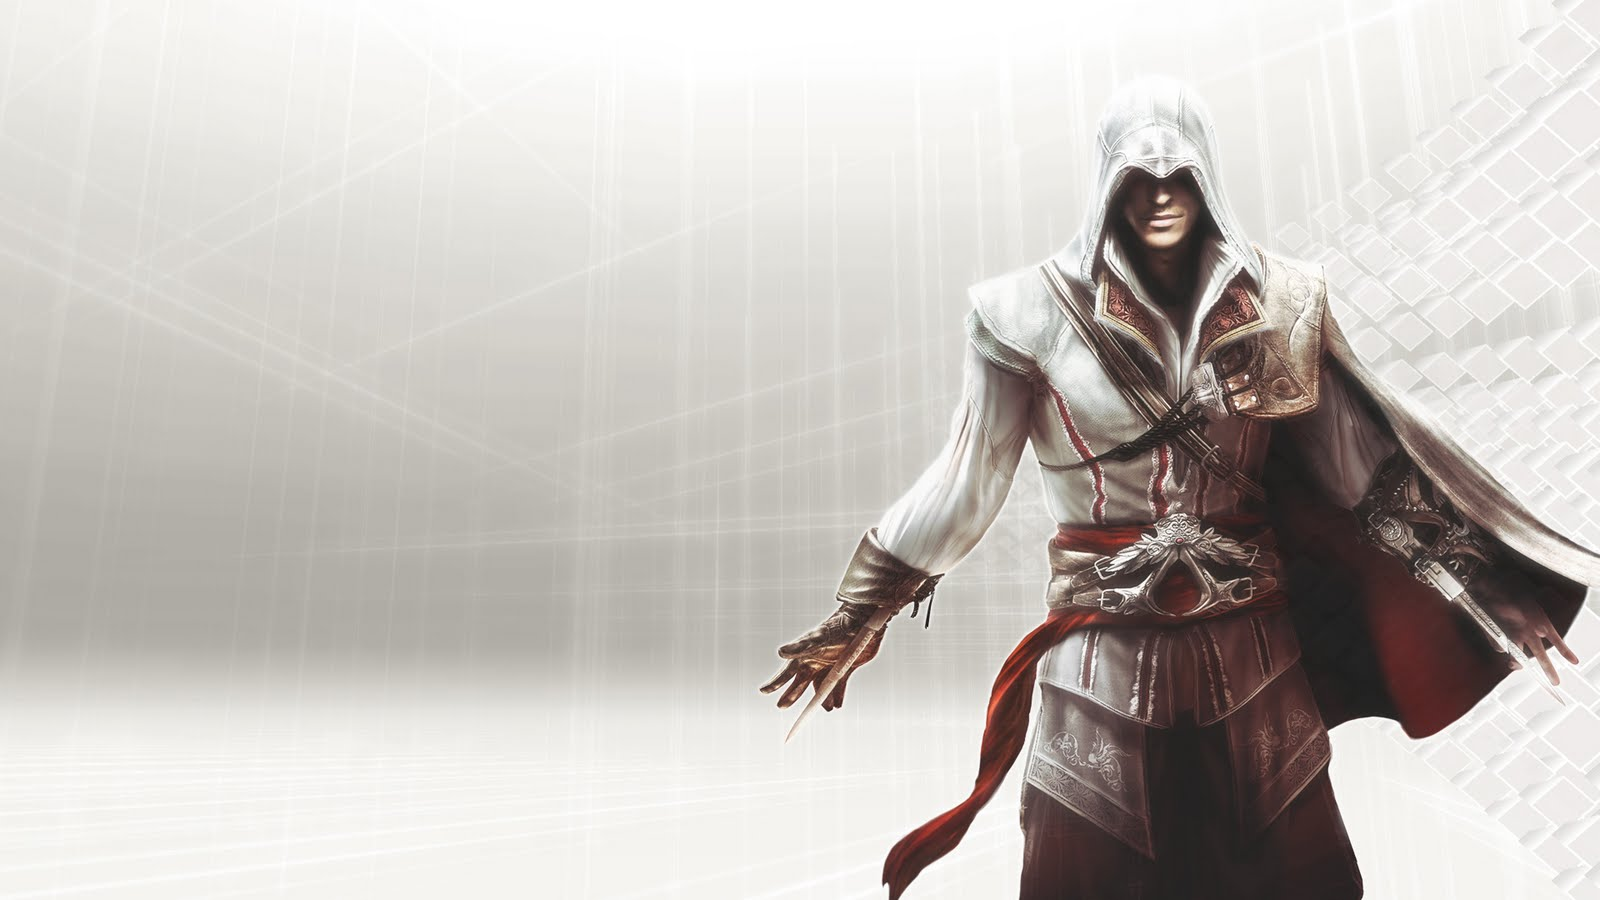 Assassins creed 3 wallpaper hdAssassins creed 3 wallpaperAssassin 1600x900